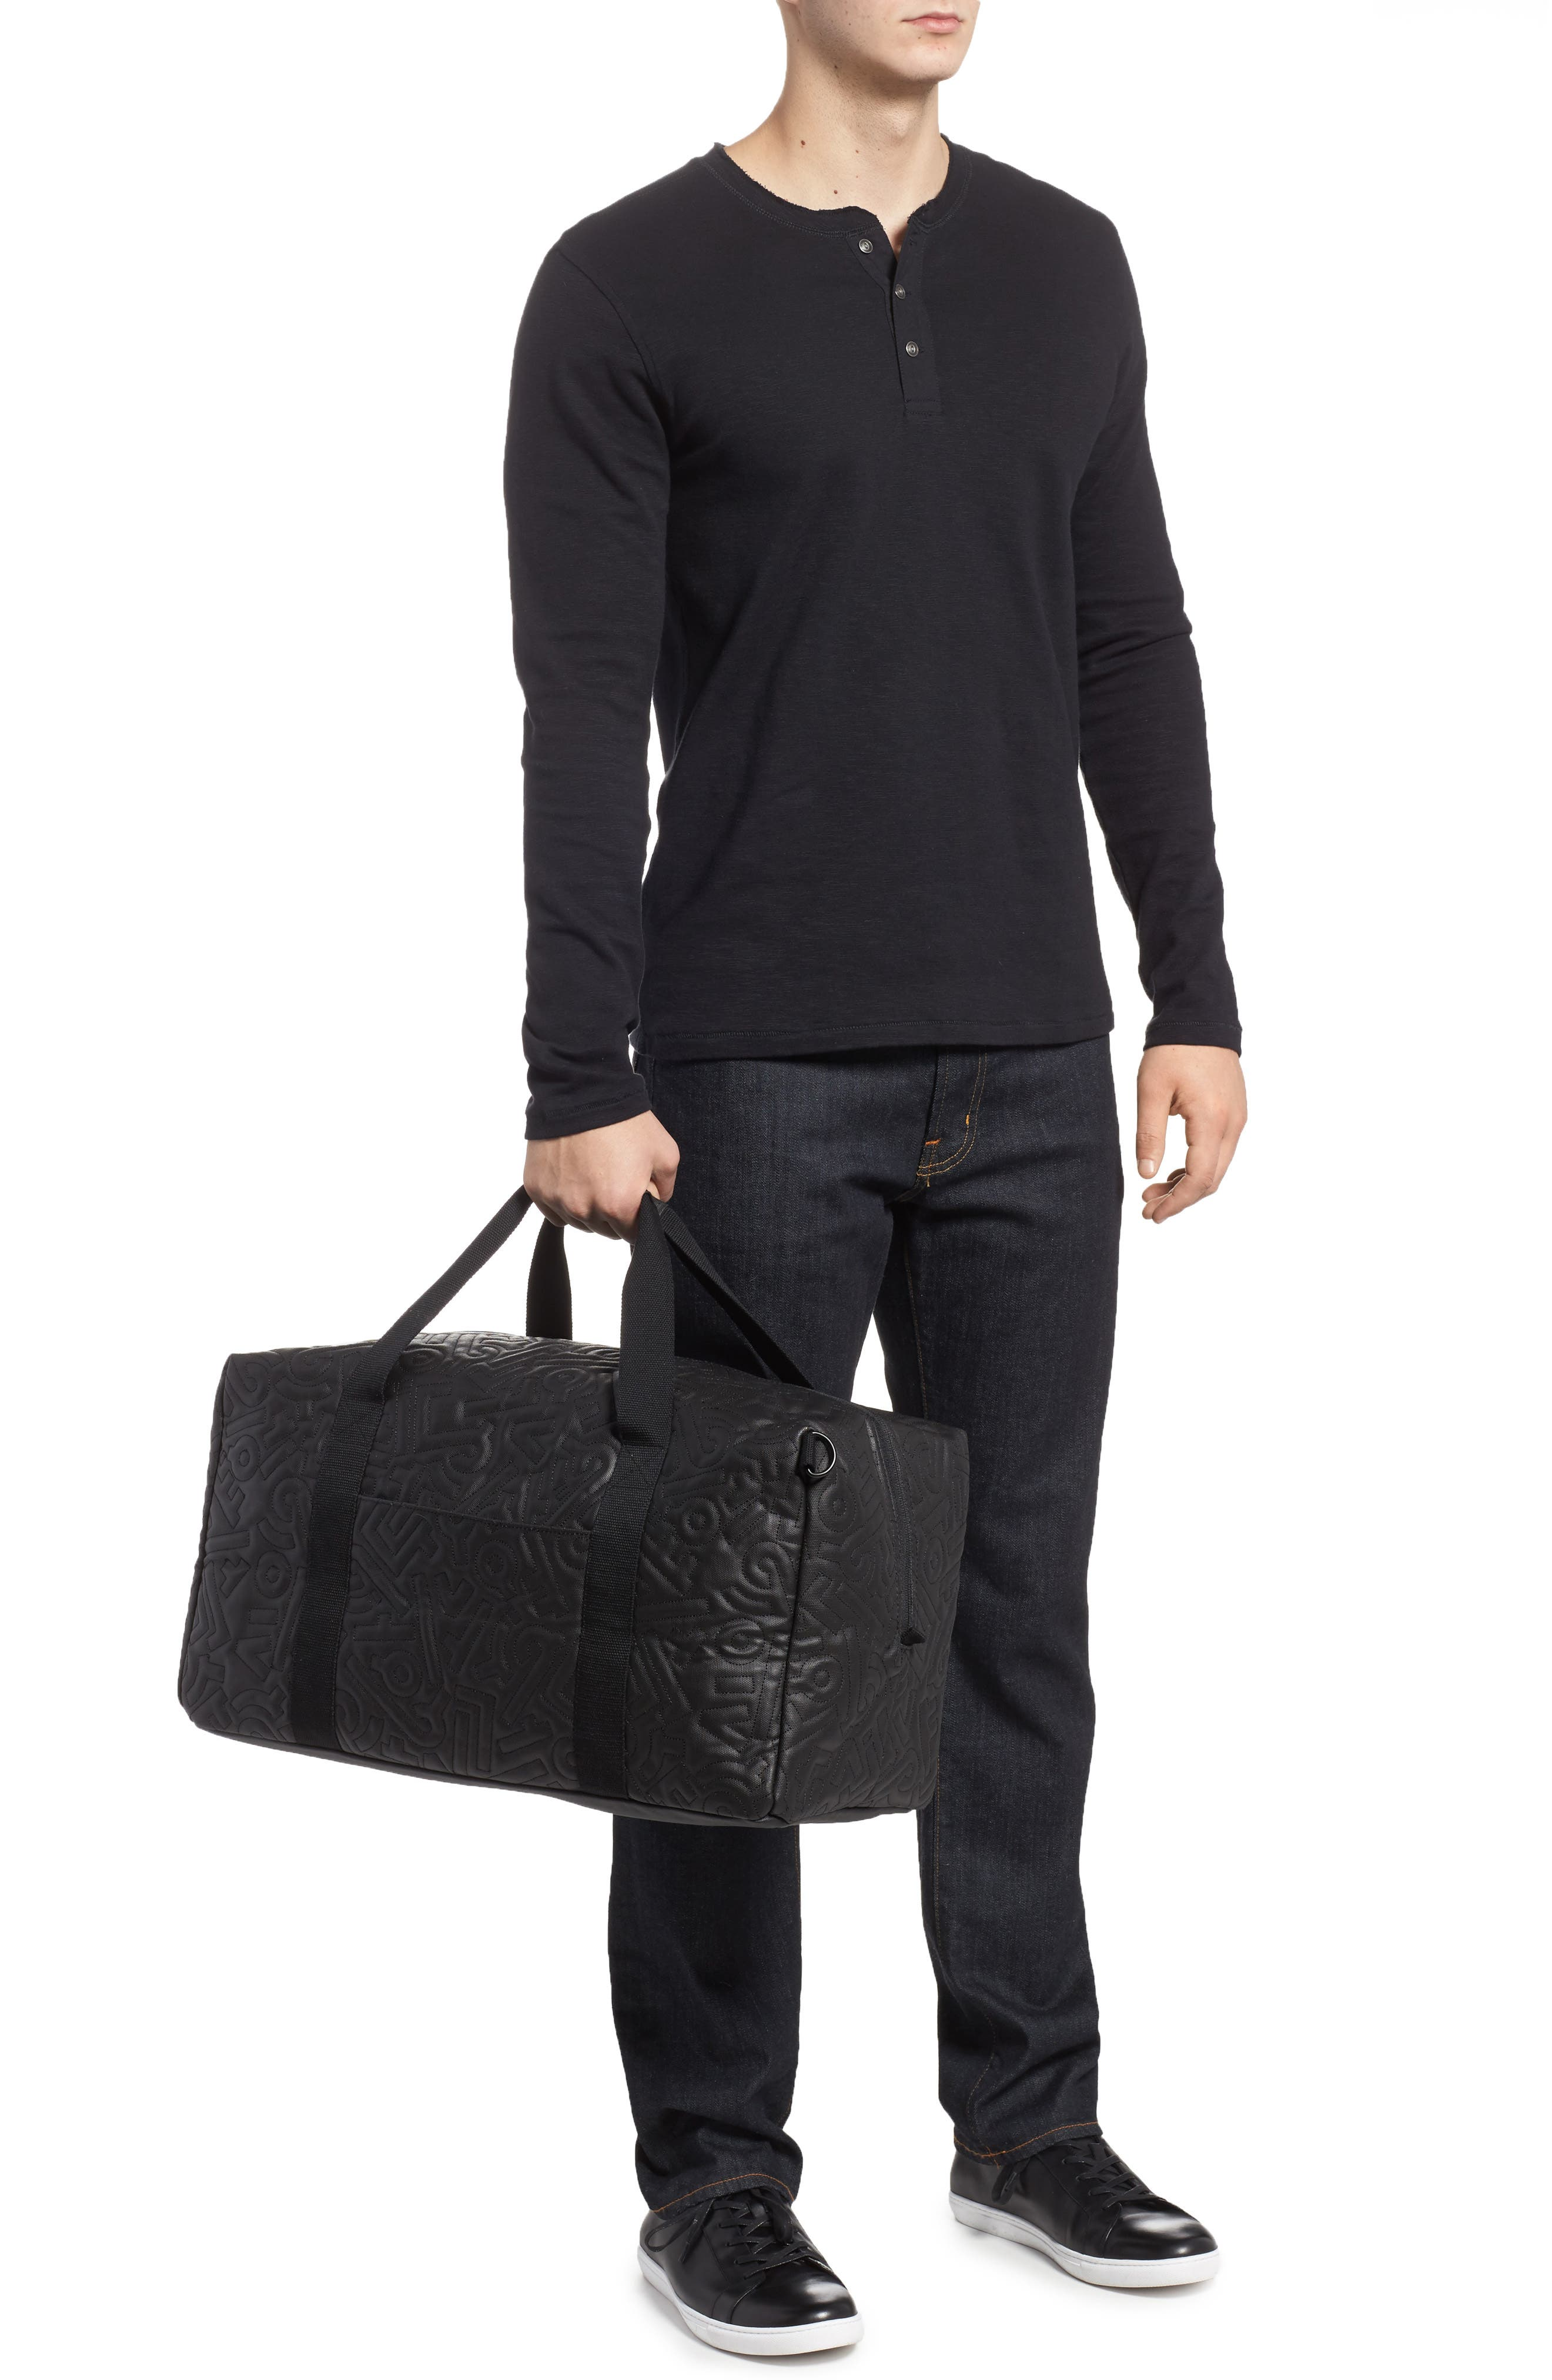 x Aaron De La Cruz Drifter Duffel Bag,                             Alternate thumbnail 2, color,                             Black Quilt